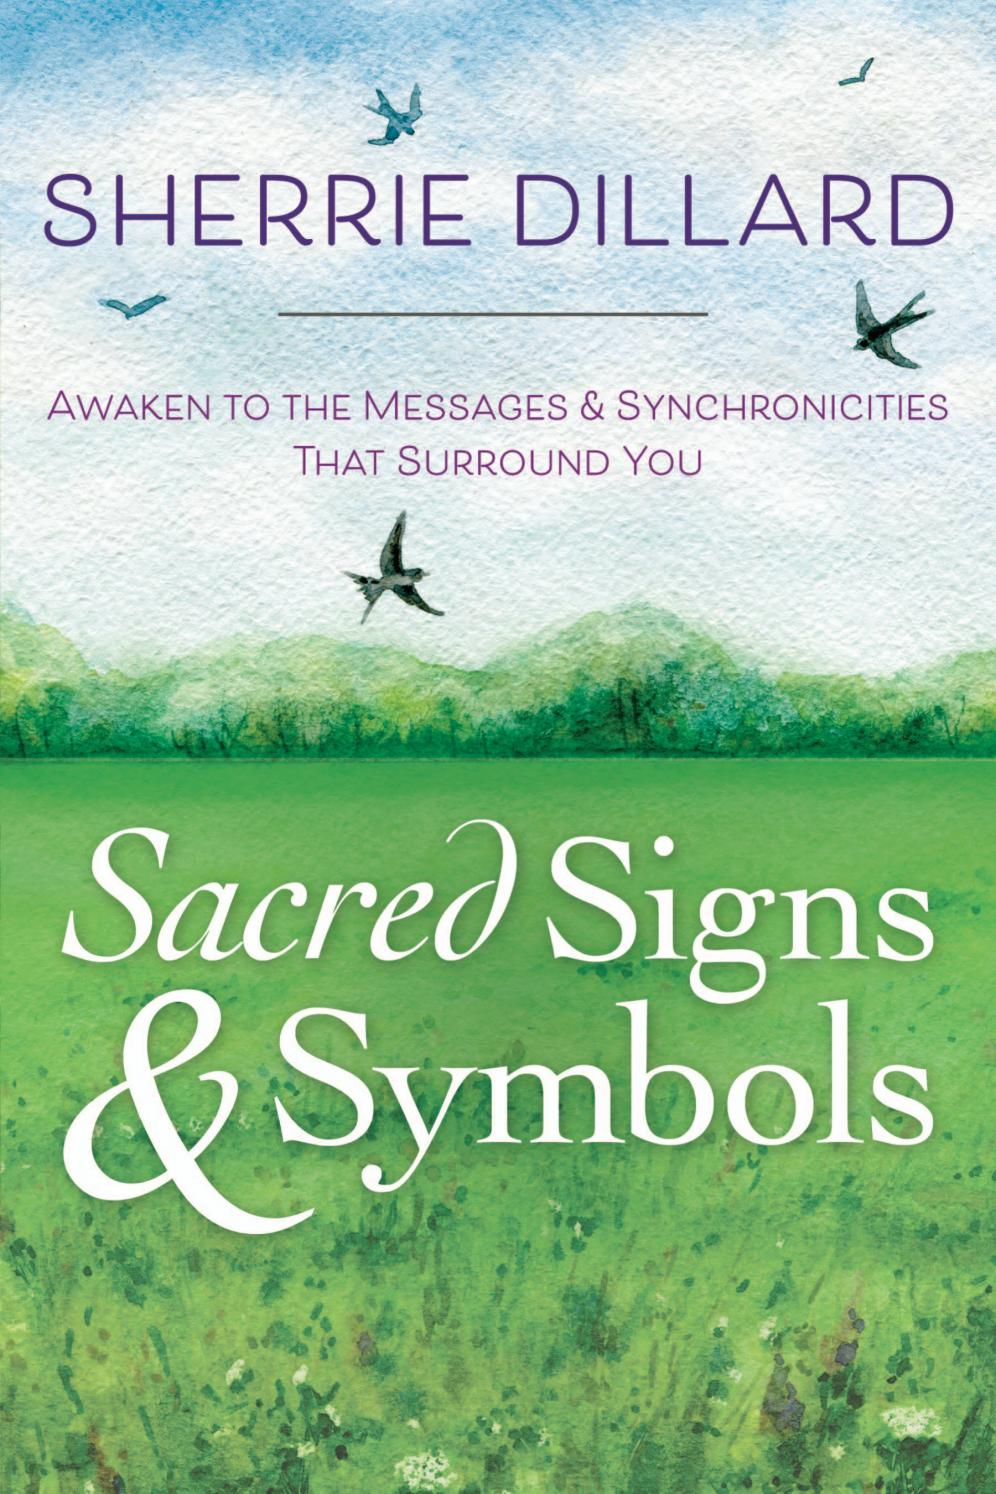 Sacred signs symbols by sherrie dillard by llewellyn worldwide sacred signs symbols by sherrie dillard by llewellyn worldwide ltd issuu biocorpaavc Image collections